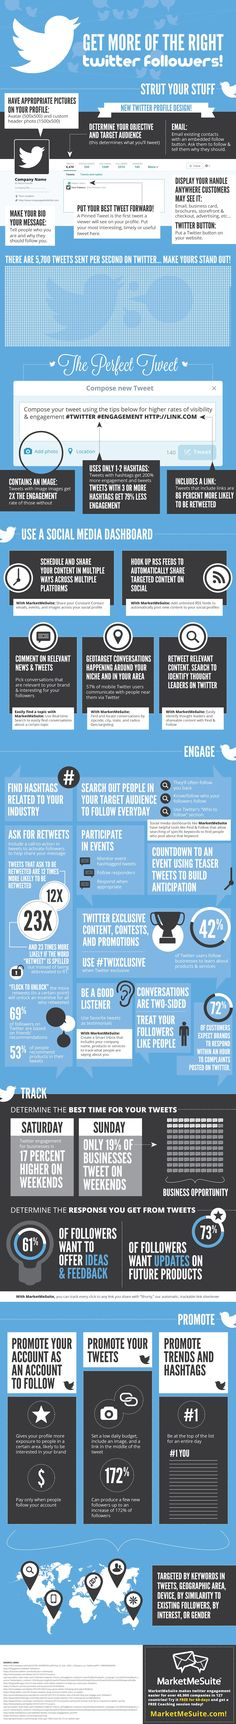 how to get more of the right sort of #Twitter follower - #infographic #socialmedia